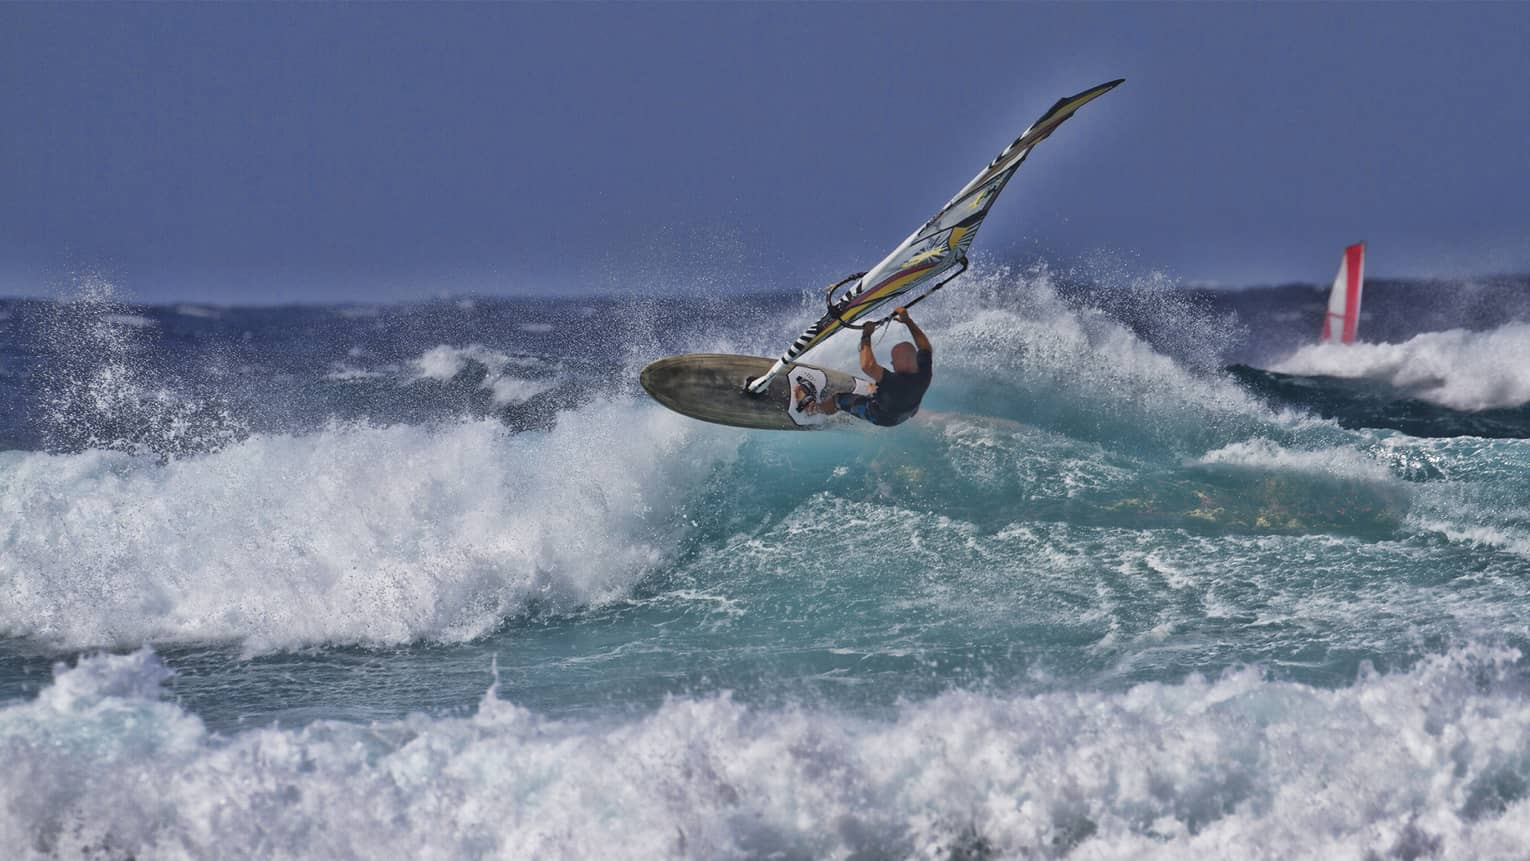 Man windsurfs over crashing wave on ocean